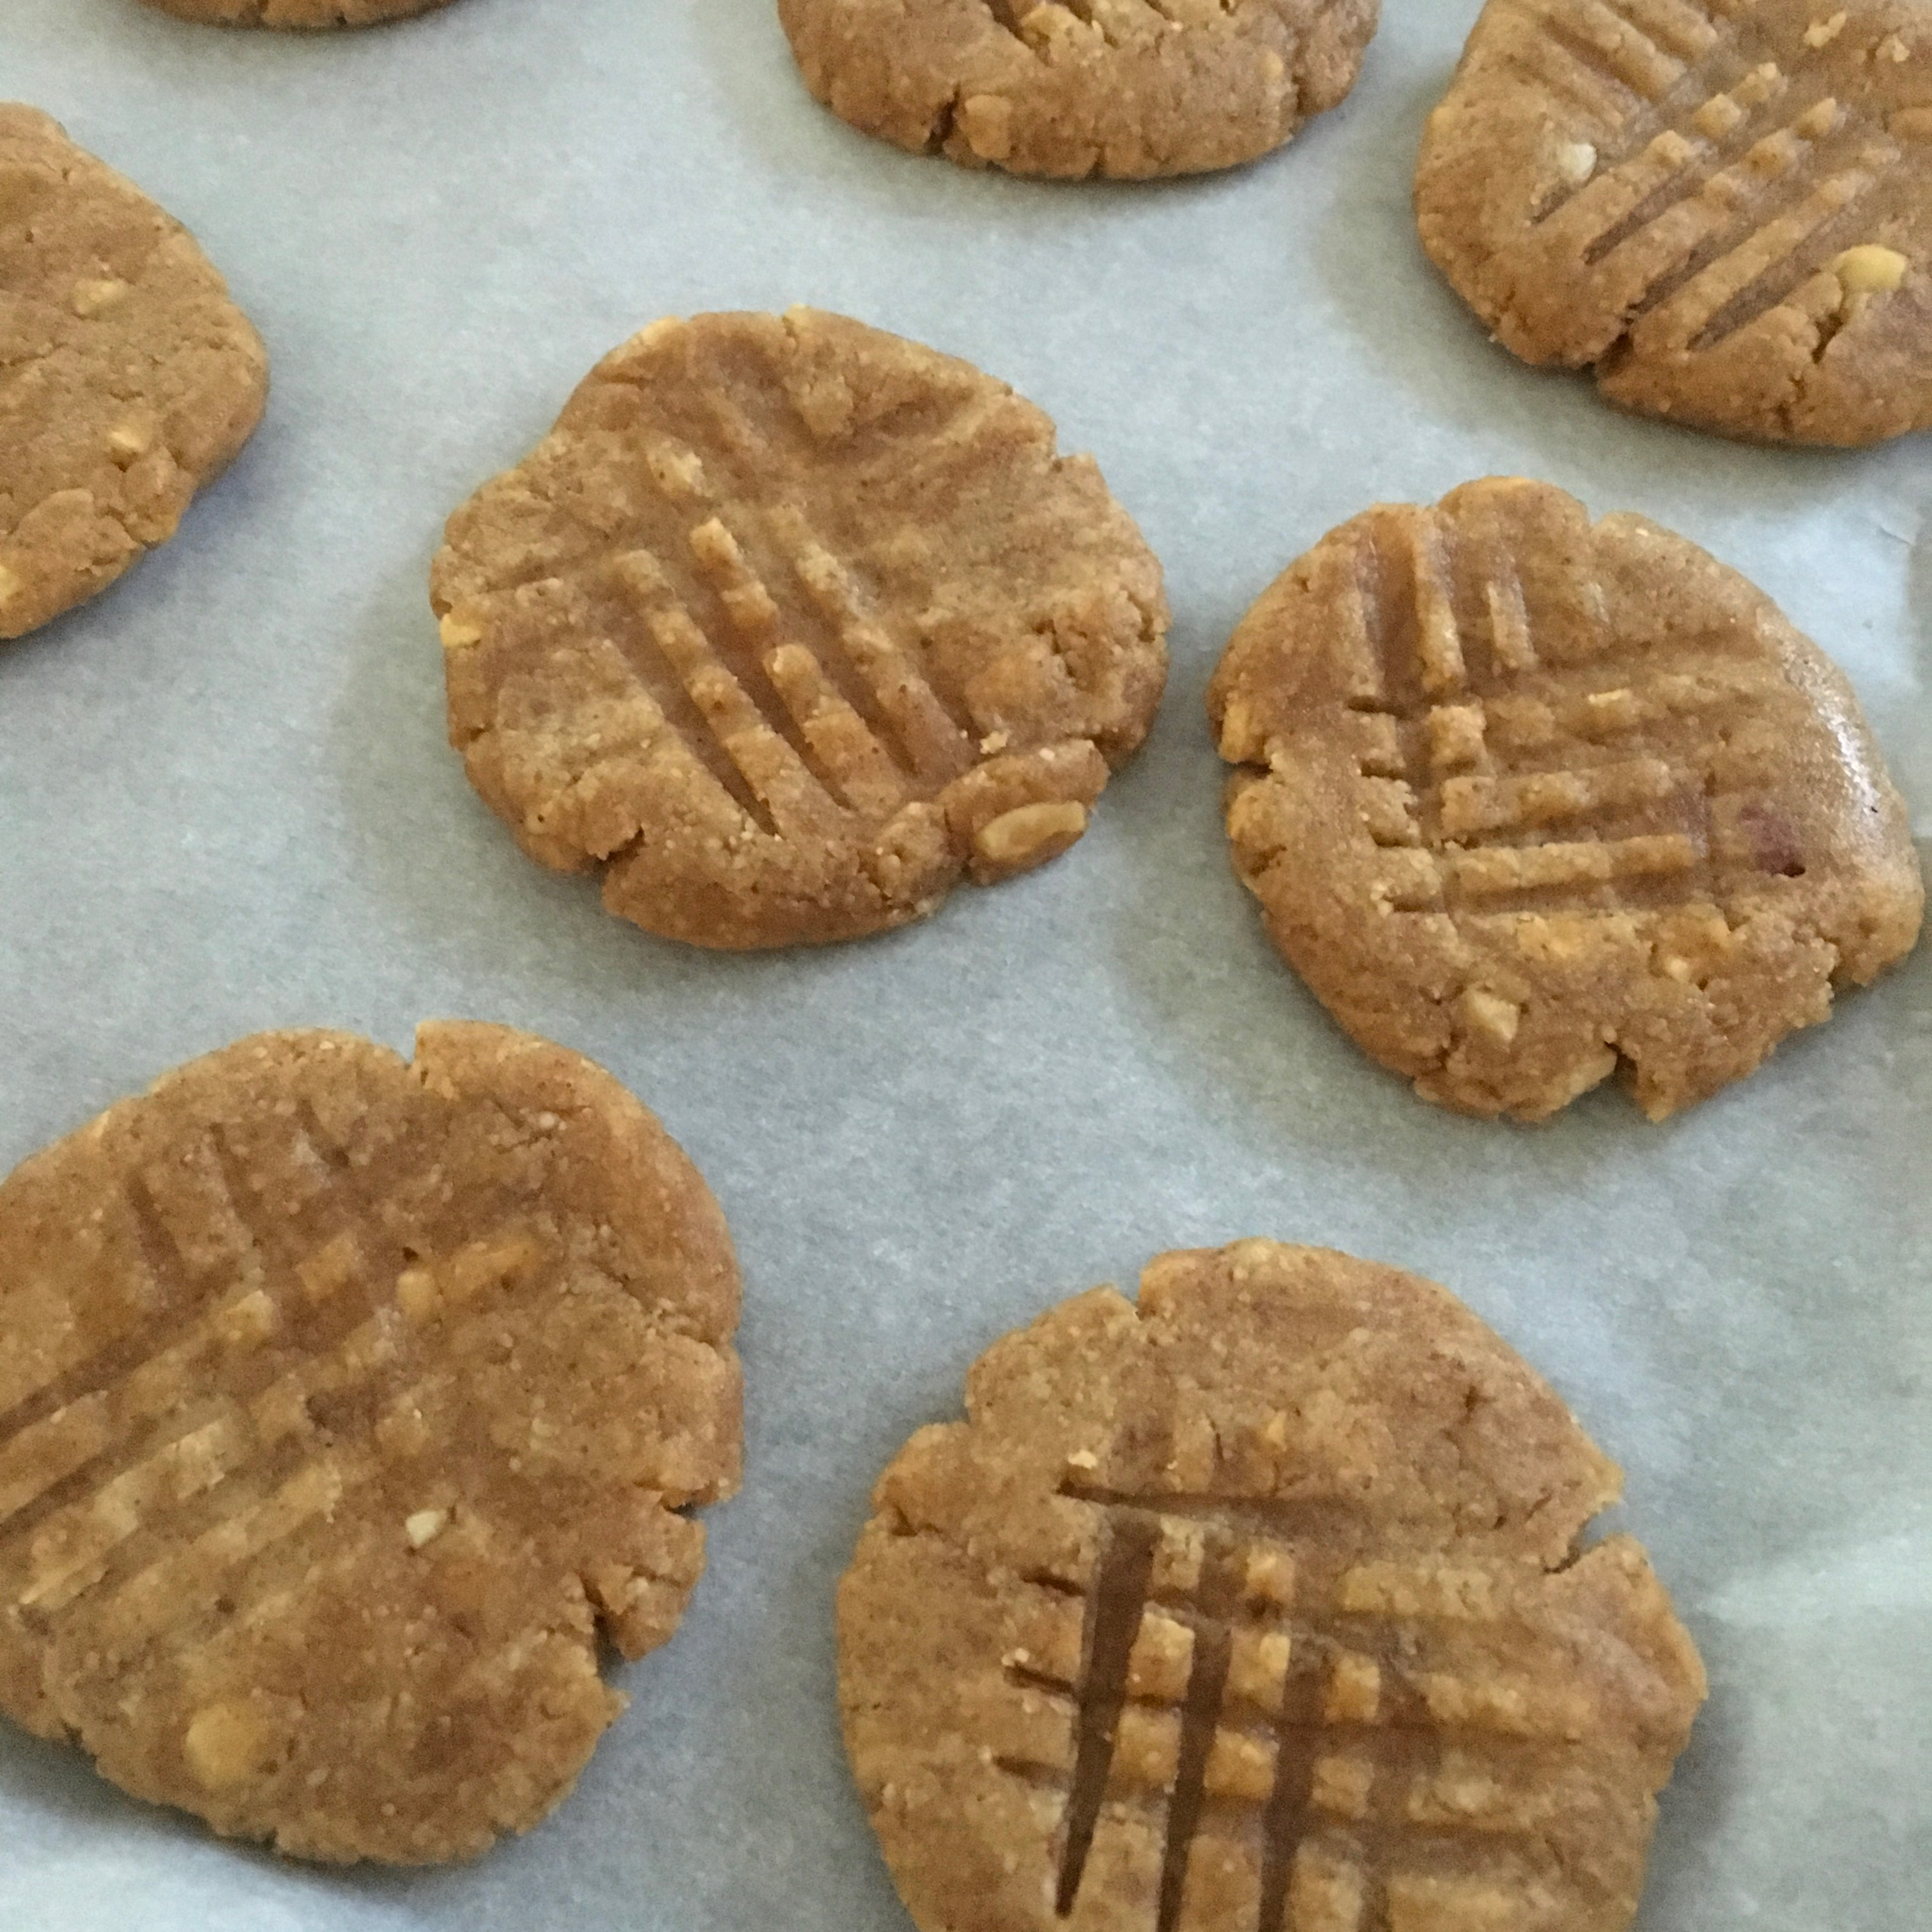 Nut Butter Chocolate Chip Cookies (Gluten-Free) Inkadog